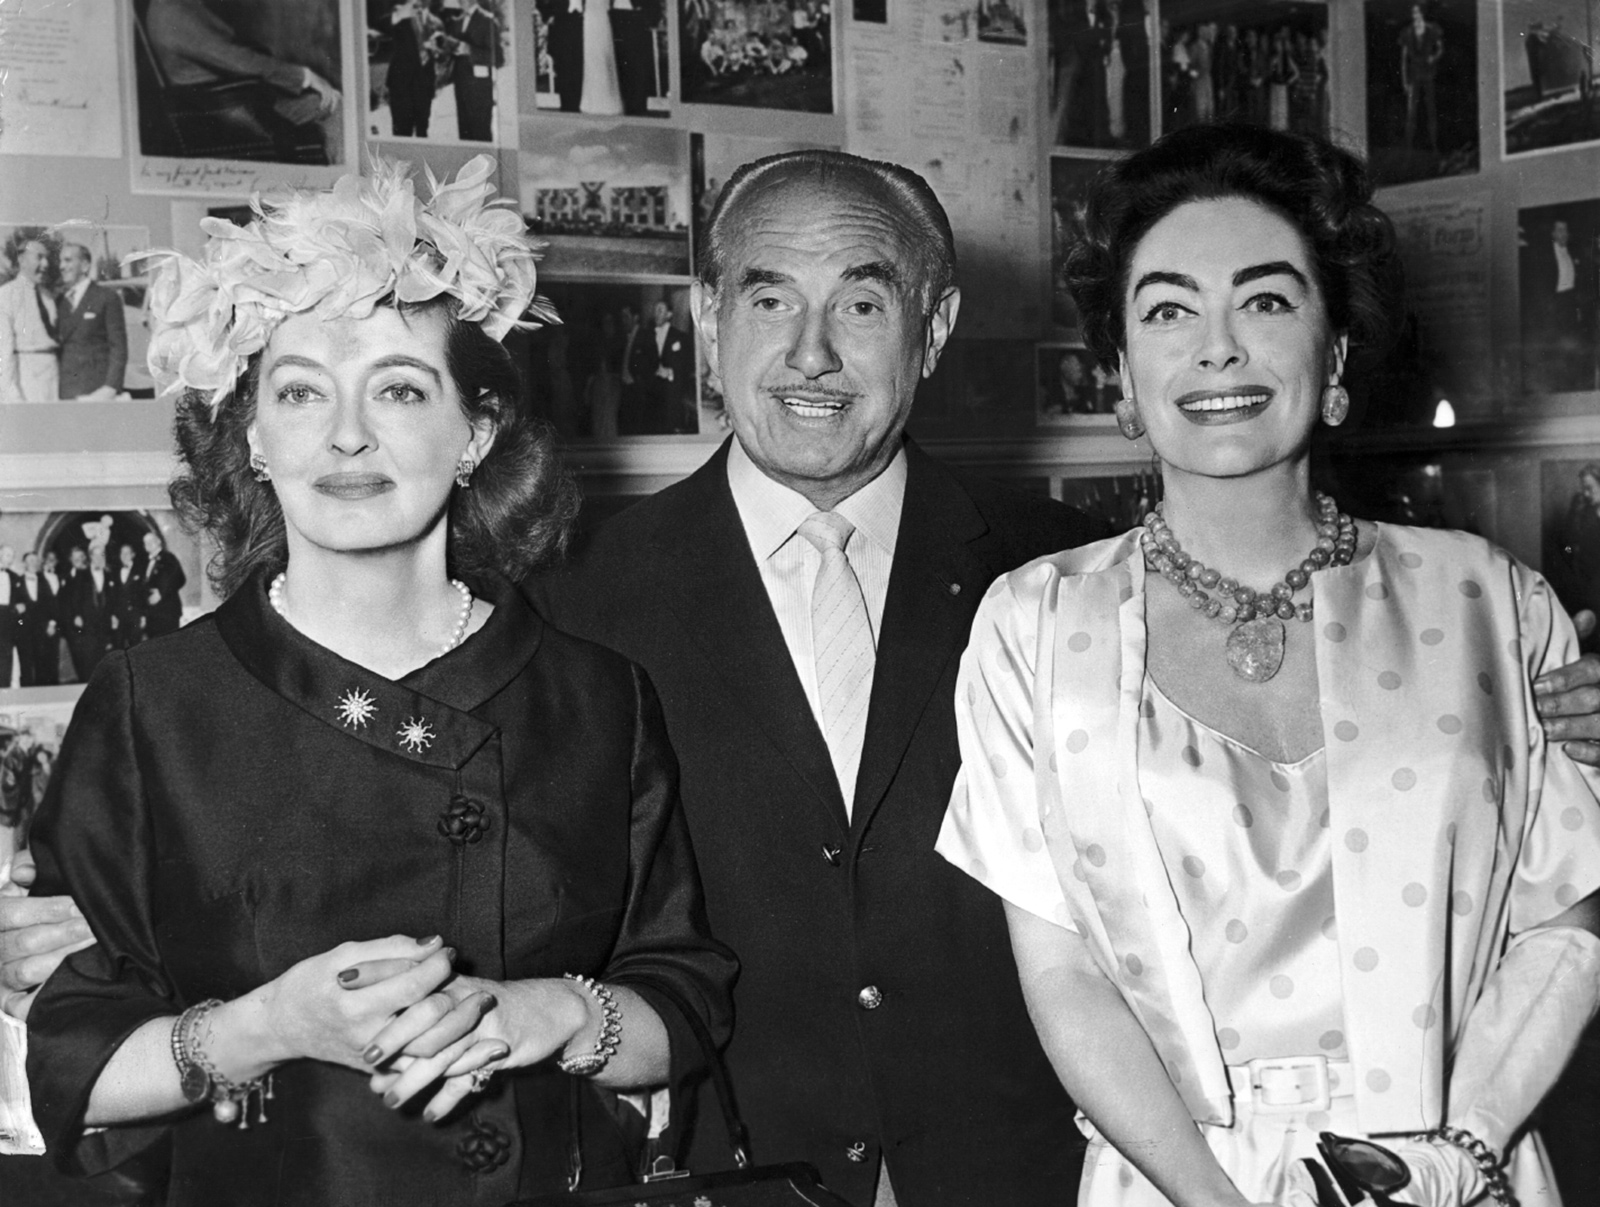 Jack Warner with Bette Davis and Joan Crawford, stars of the Warner Brothers film What Ever Happened to Baby Jane?, circa 1962